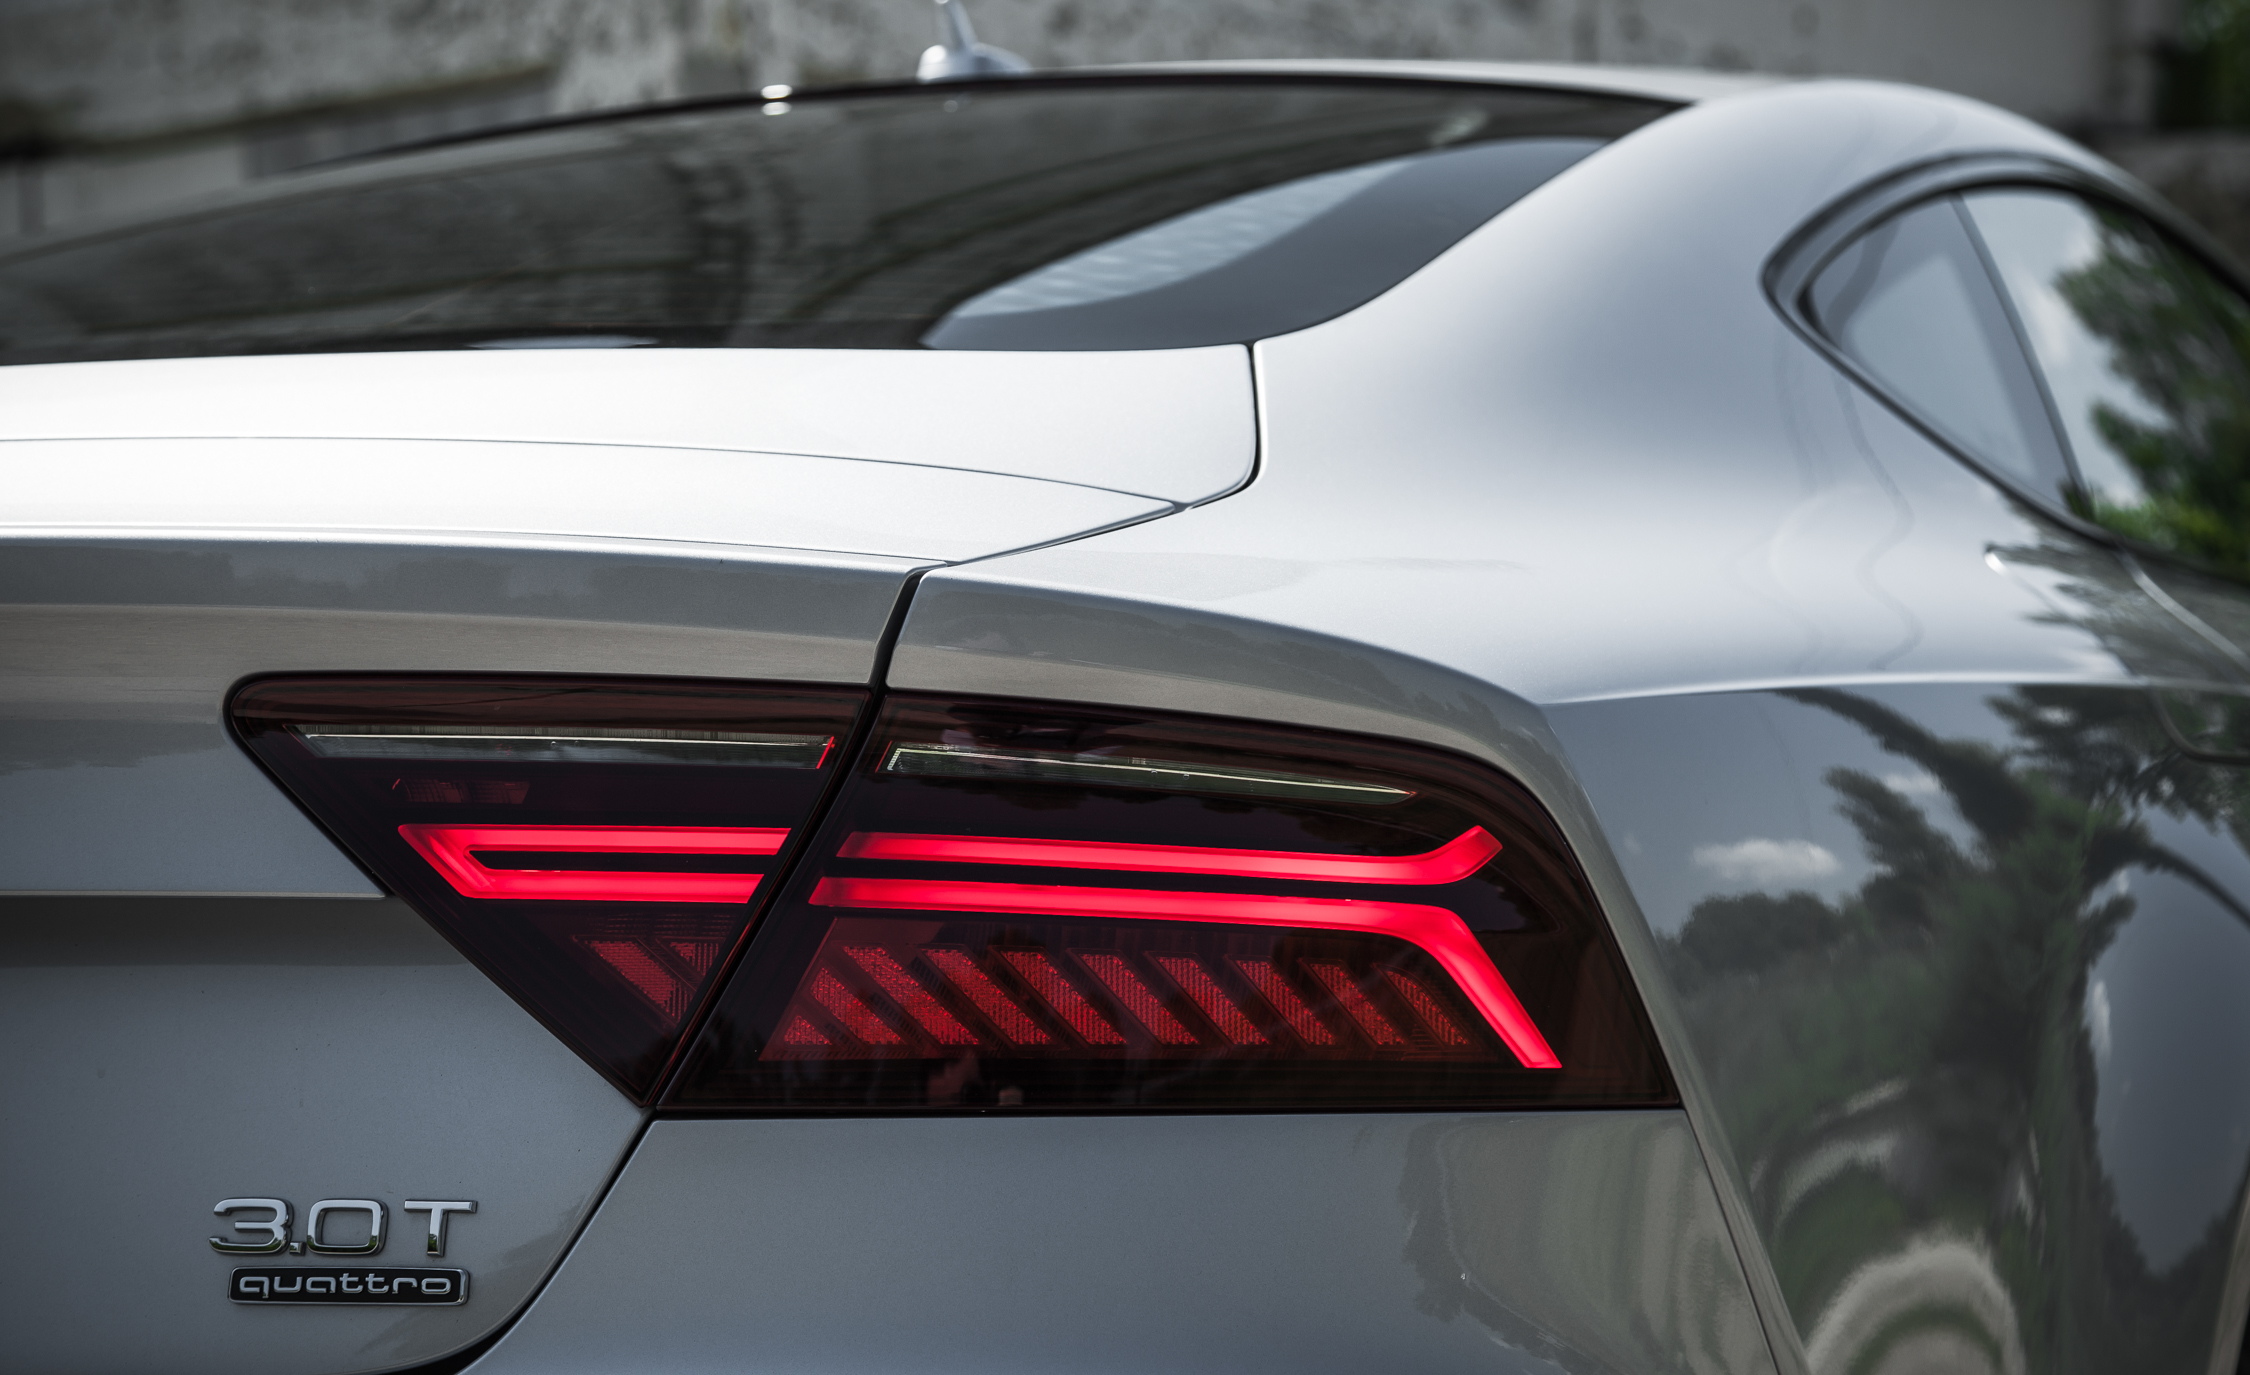 2016 Audi A7 Exterior View Taillight (Photo 17 of 26)